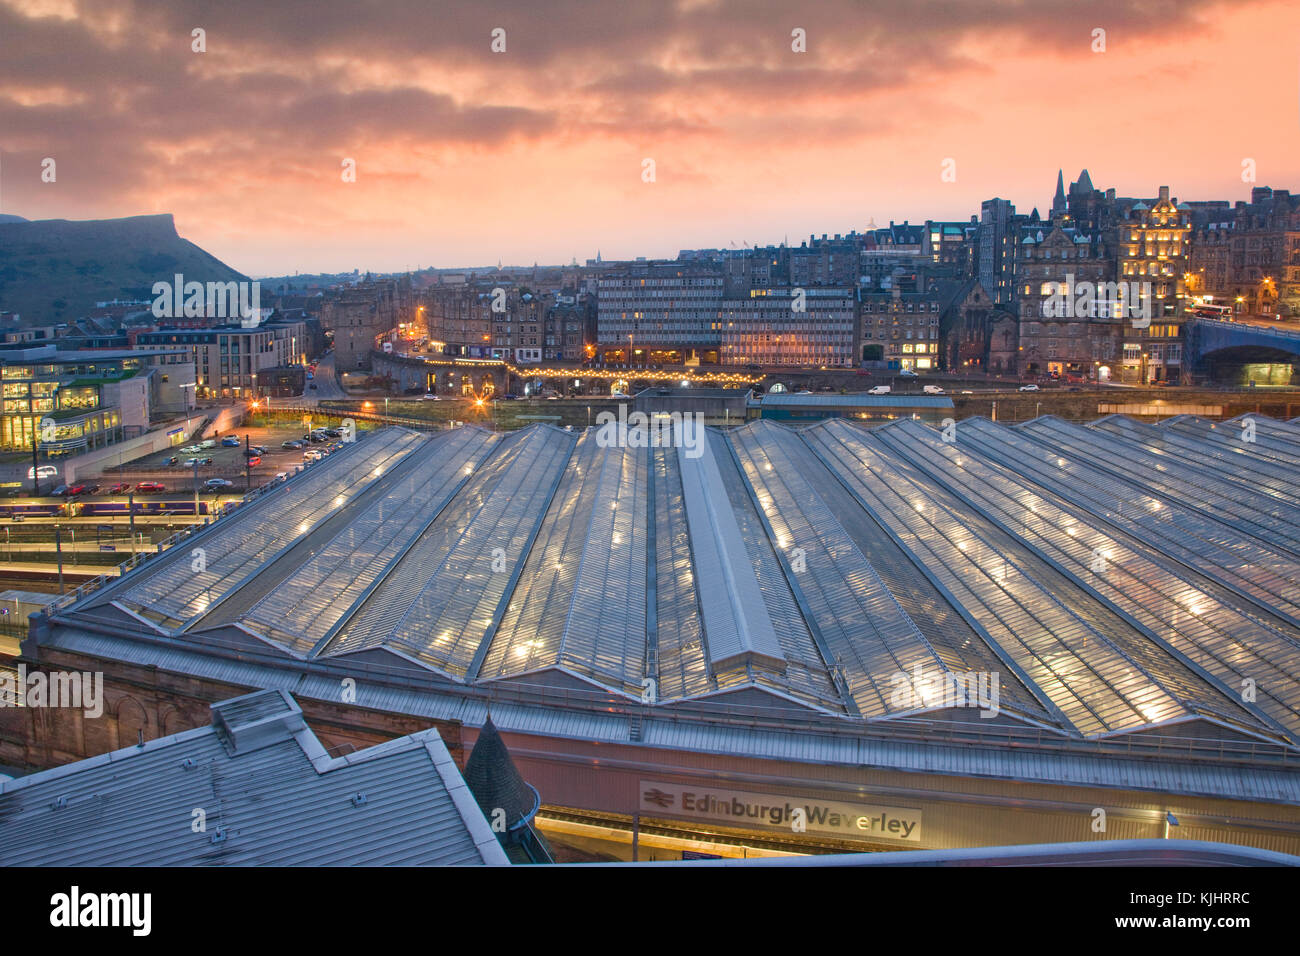 Dawn over Edinburgh's Waverley Station, City of Edinburgh, Lothian - Stock Image